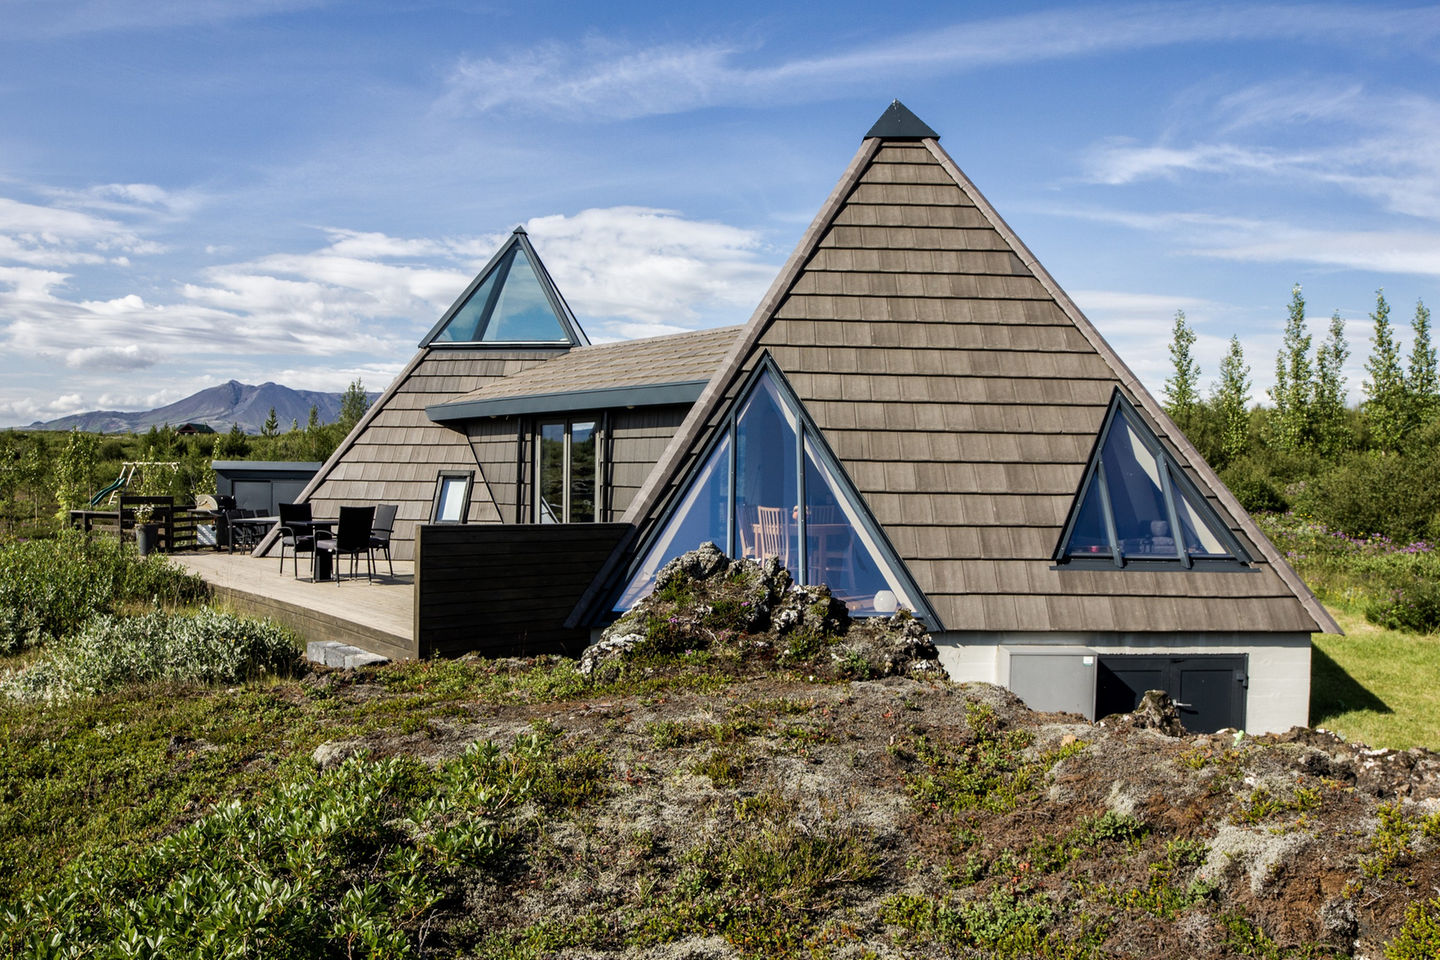 Icelandu0027s Volcanoes Were The Inspiration For This Stunning Pyramid Shaped  Vacation Cottage. It Has